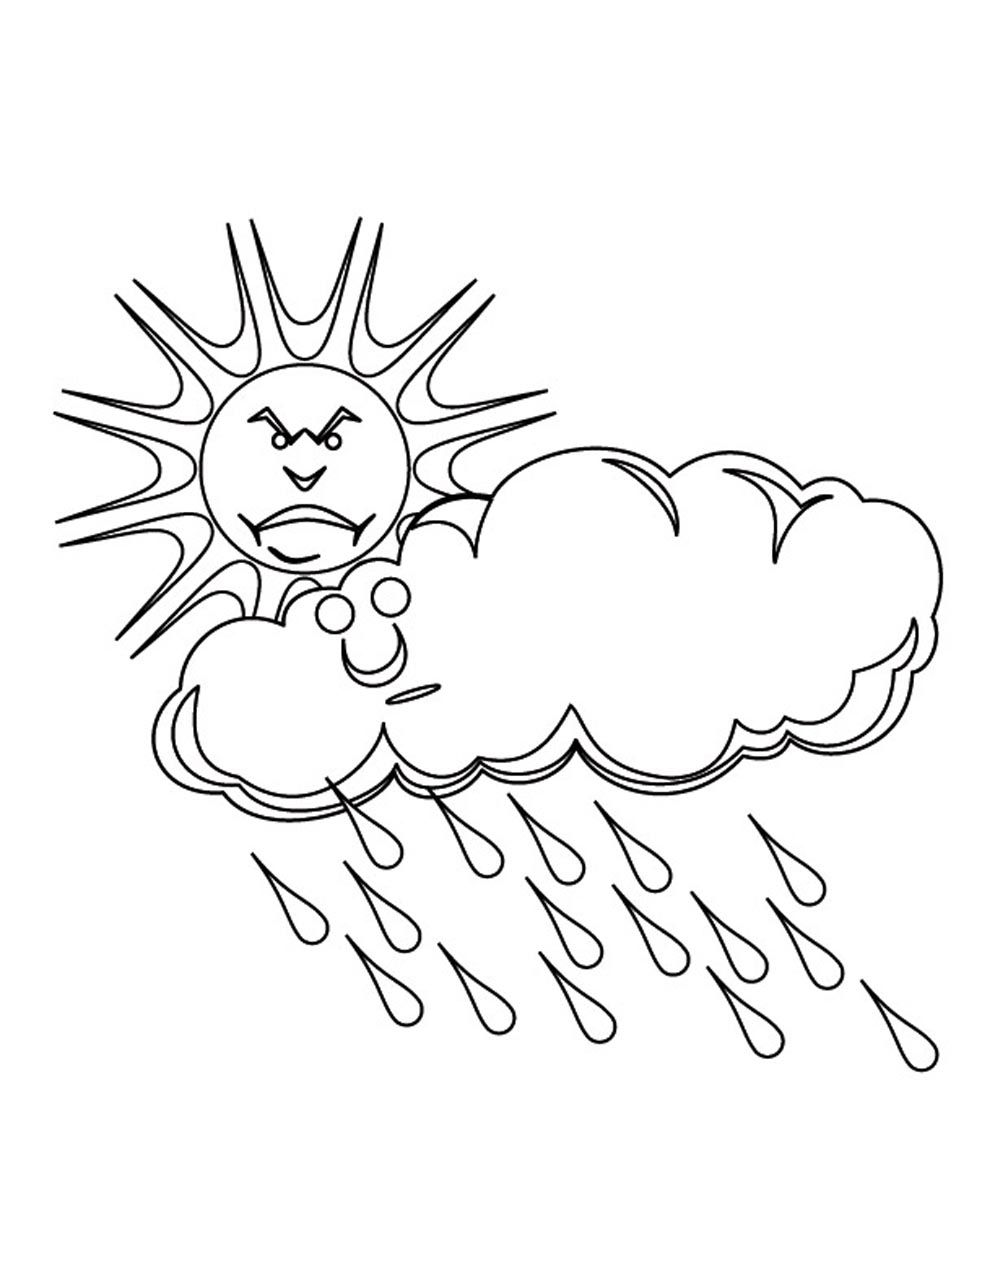 Rain-Cloud-Coloring-Page.jpg (995×1288) | coloring book | Pinterest